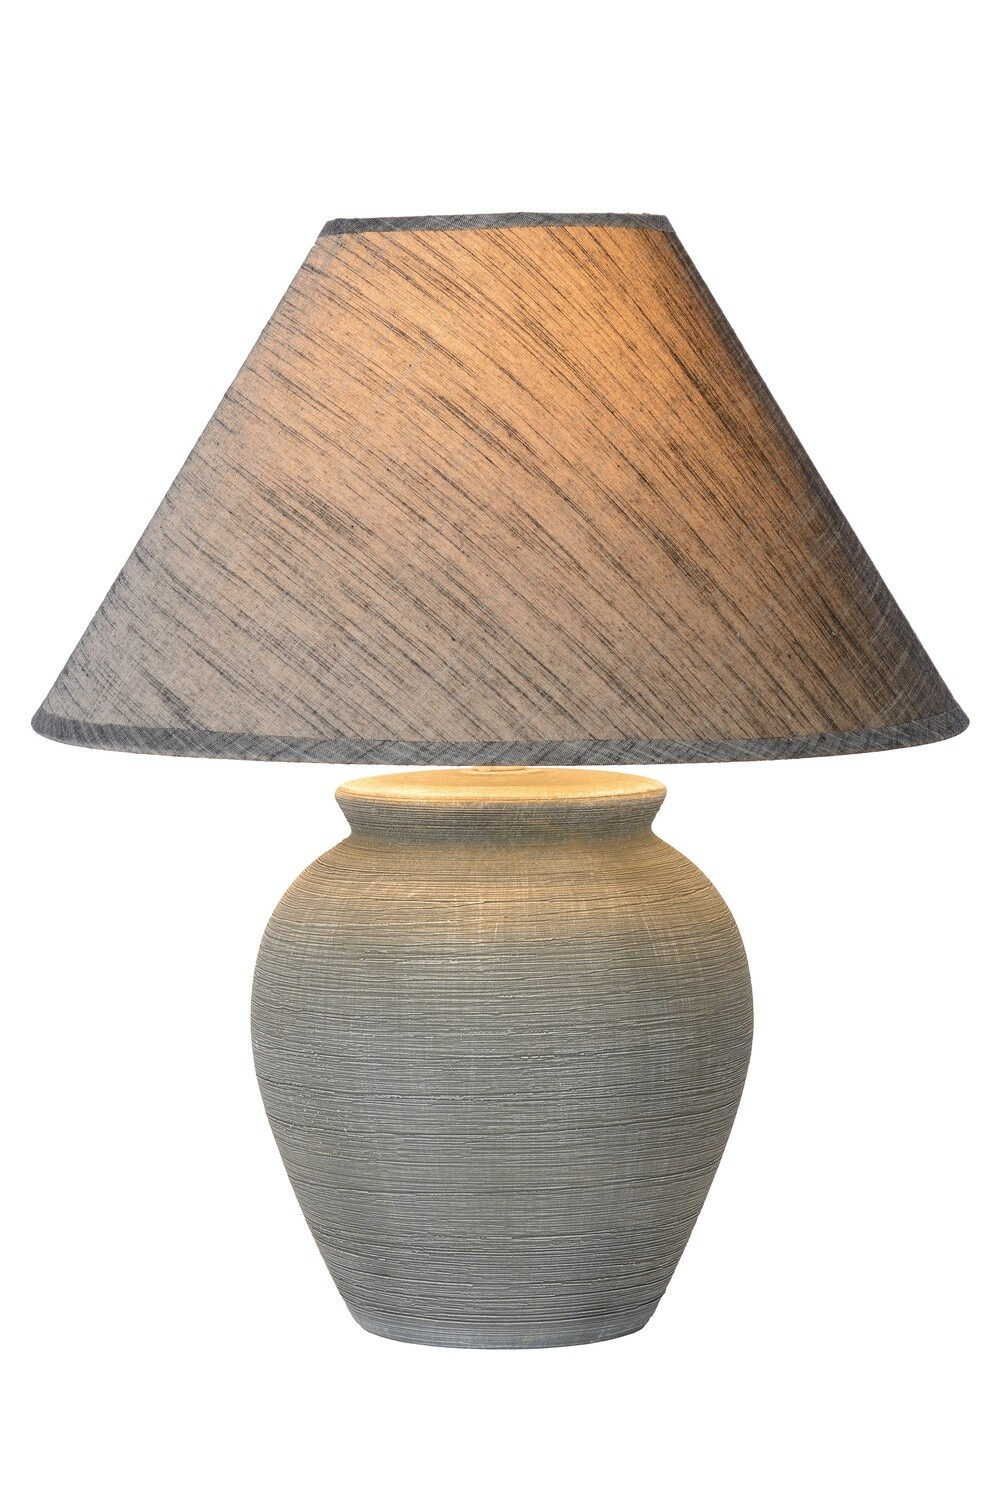 RAMZI Table lamp Ø 35 cm 1xE27 Grey